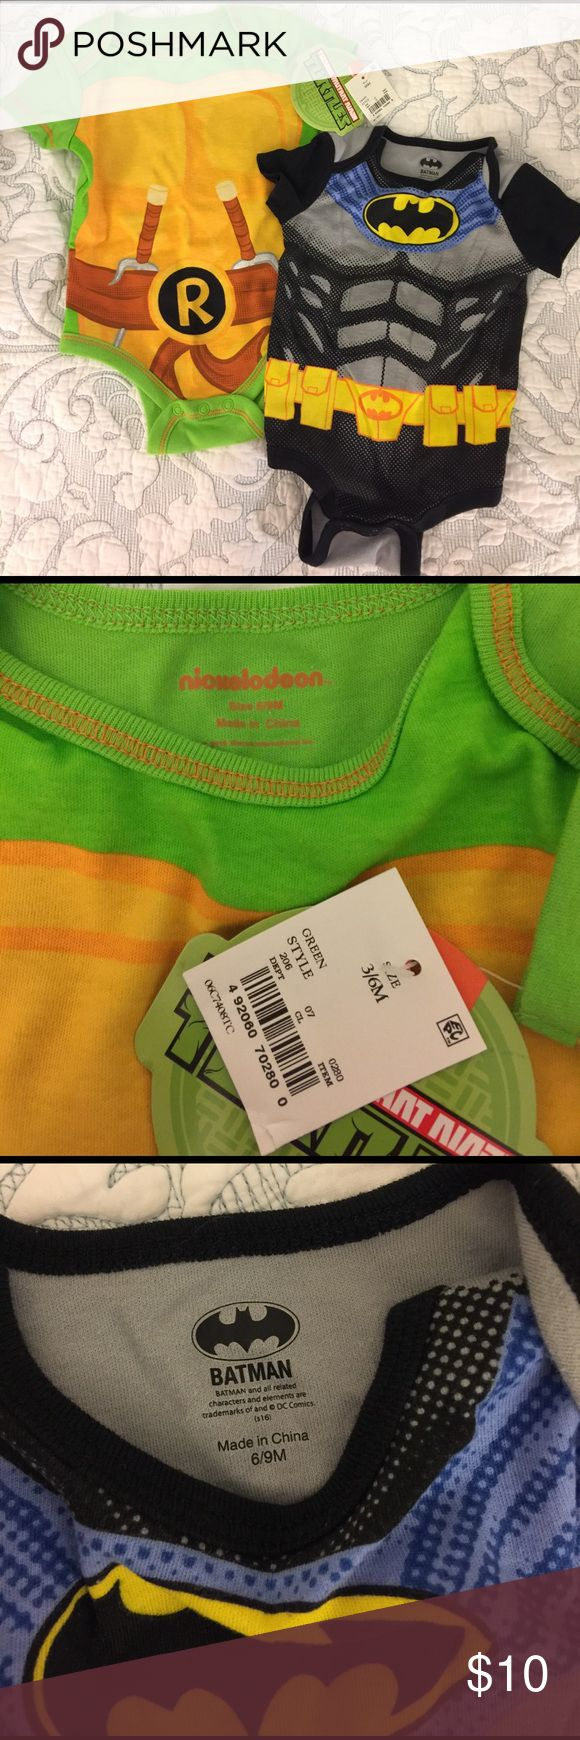 NWT Ninja turtles and batman onesies  6-9M Ninja turtles onesie is NWT... Batman onesie has been worn once. No flaws.  Set of two.  The tag on the Ninja turtles onesie says 3/6M but it says 6/9M on the onesie itself as shown in the picture... I'm pretty sure it is 6-9M. Nickelodeon One Pieces Bodysuits